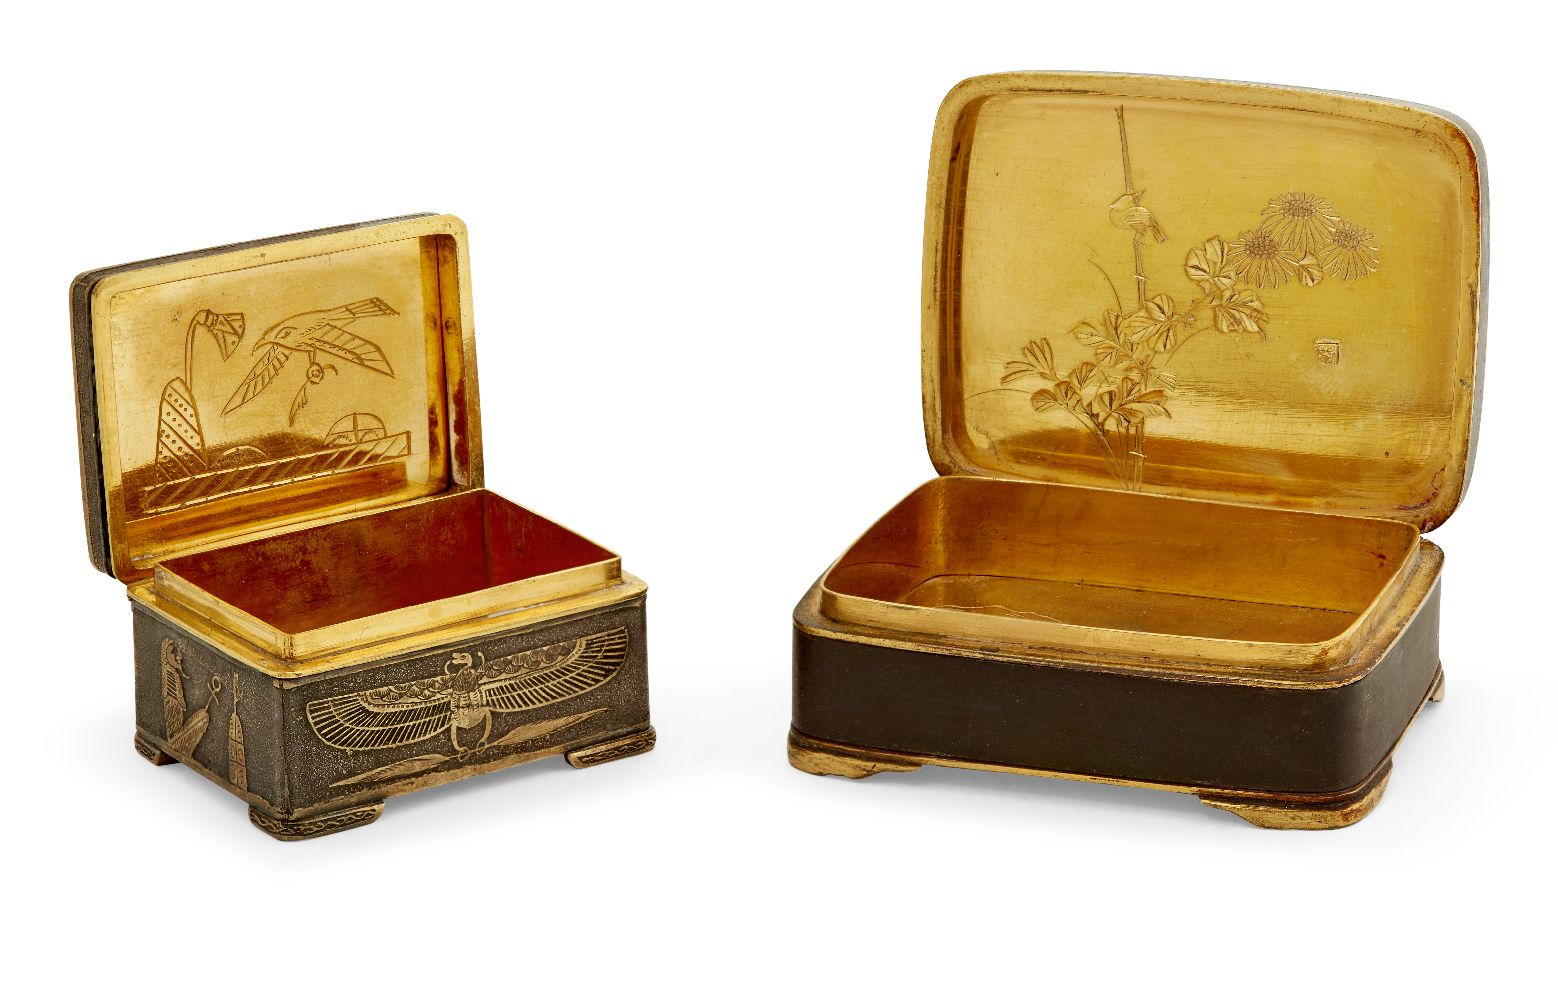 Two Komai style small pill boxes, late 19th early 20th century, one decorated with bamboo to - Image 5 of 12